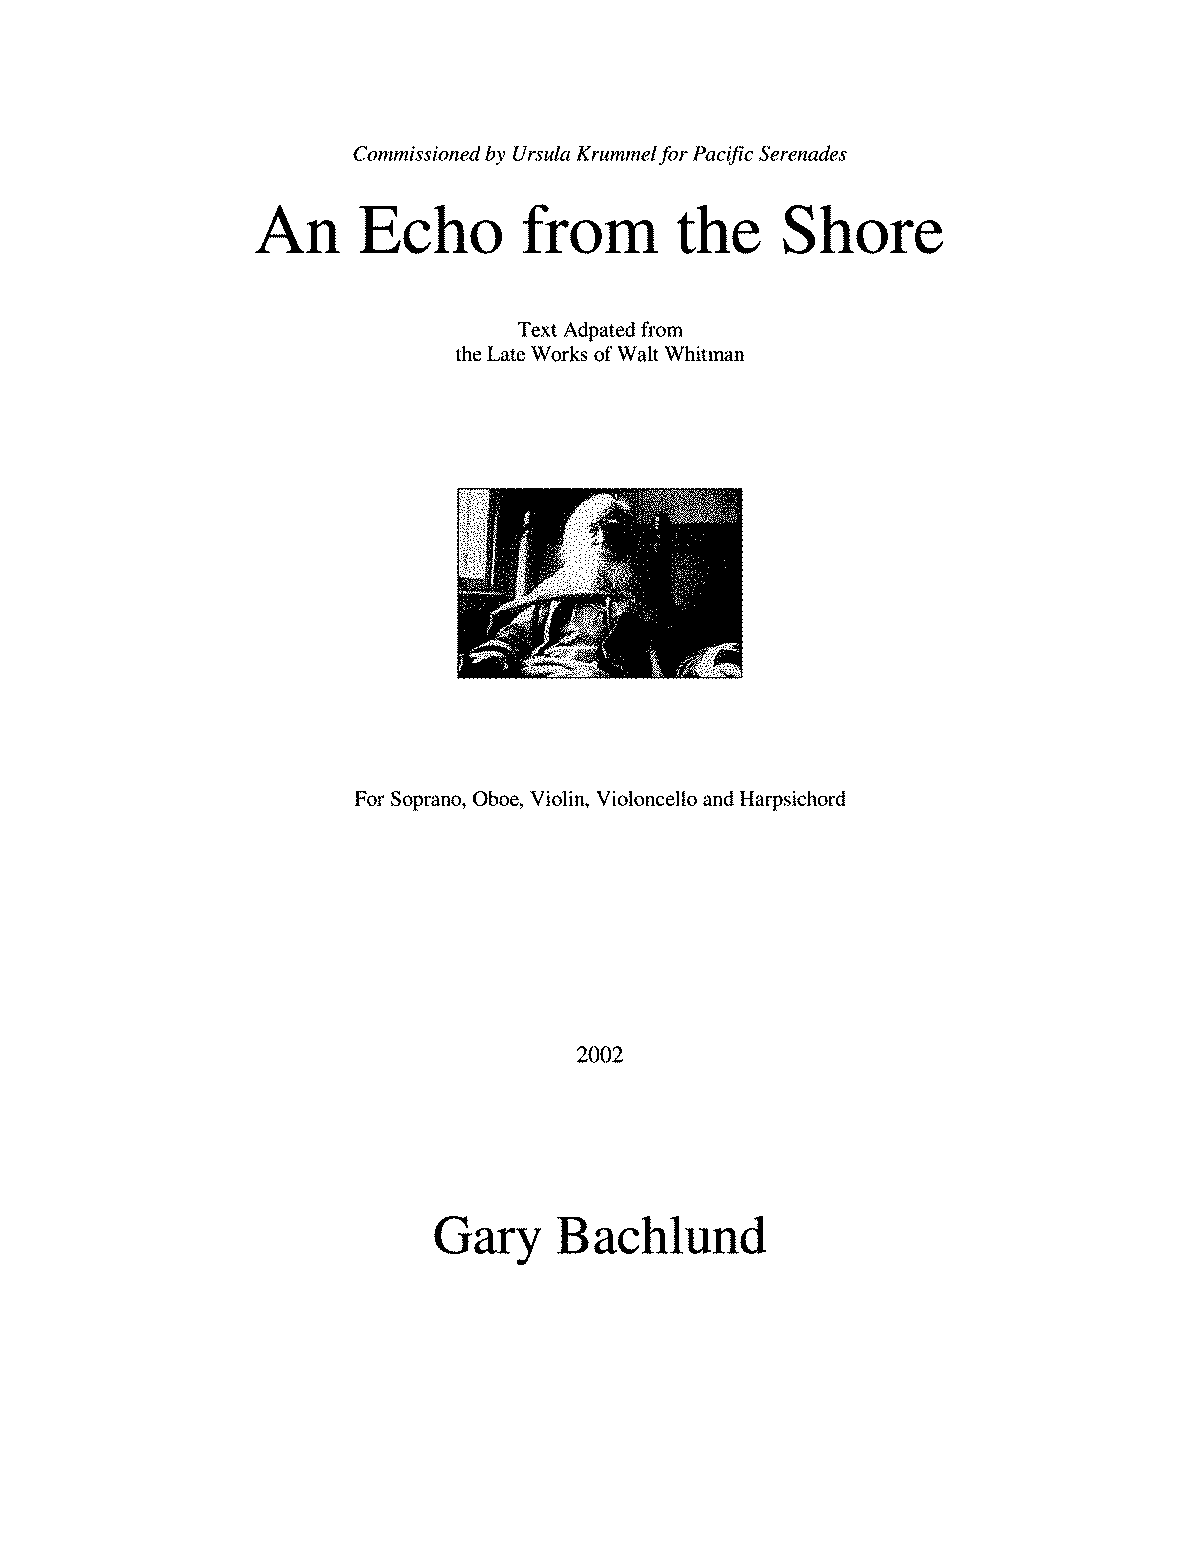 PMLP521993-An Echo from the Shore 2008 edition.pdf